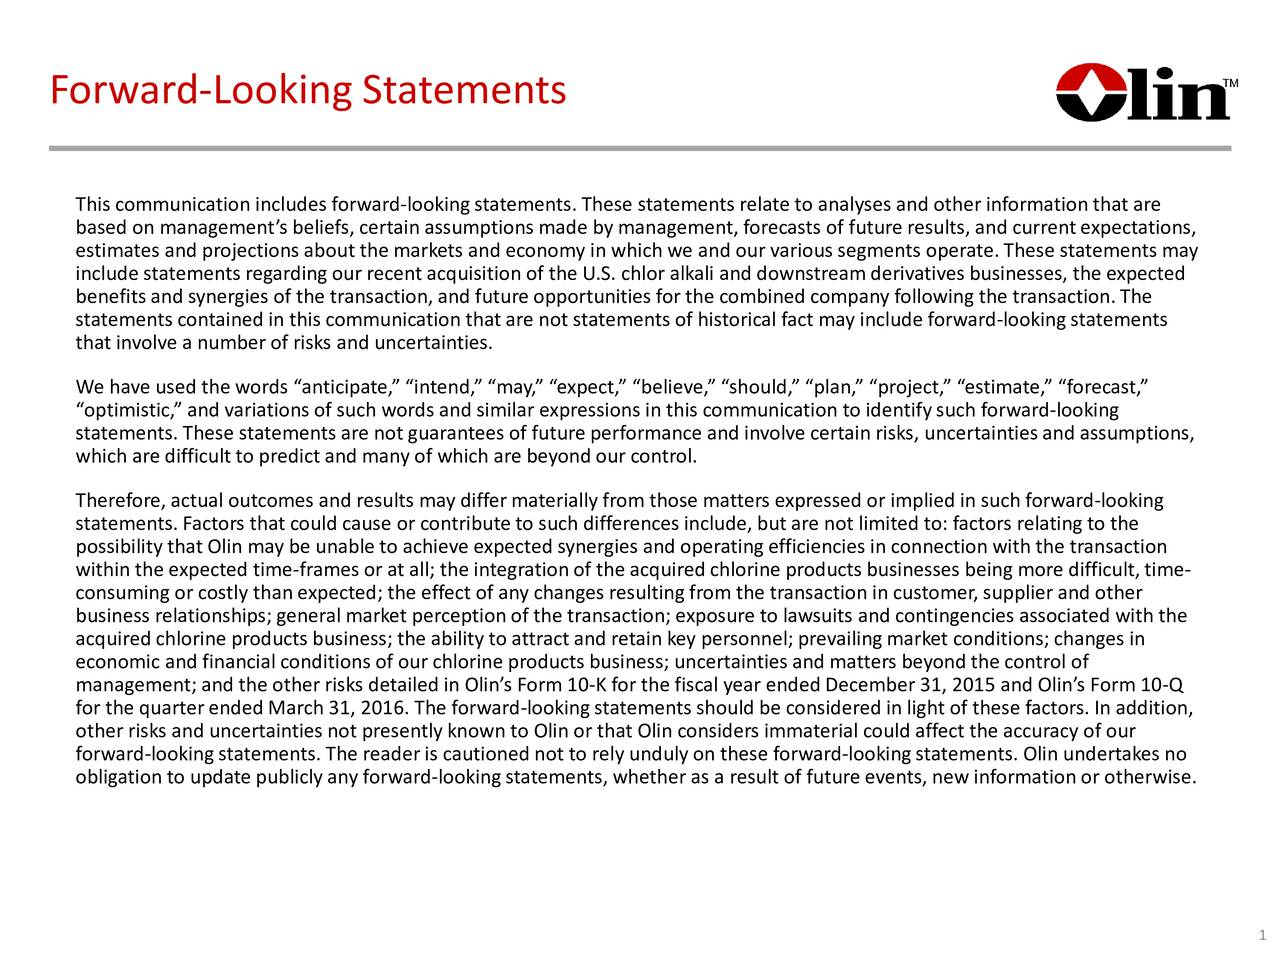 This communication includes forward-looking statements. These statements relate to analyses and other informationthat are based on managements beliefs, certain assumptions made by management, forecastsof future results, and current expectations, estimates and projections about the markets and economy in which we and our various segments operate. These statements may include statements regardingour recent acquisition of the U.S. chlor alkali and downstream derivatives businesses, the expected benefits and synergies of the transaction, and future opportunities for the combined company following the transaction. The statements containedin this communication that are not statements of historical fact may include forward- looking statements that involve a number of risks and uncertainties. We have used the words anticipate, intend, may, expect, believe, should, plan, project, estimate, forecast, optimistic, and variations of such words and similar expressions in this communication to identifysuch forward- looking statements.These statements are not guarantees of future performance and involve certain risks, uncertainties and assumptions, which are difficult to predict and many of which are beyond our control. Therefore, actual outcomes andresults may differmaterially from those matters expressed or implied in such forward-looking statements. Factorsthat could cause or contribute to such differences include, but are not limited to: factors relating to the possibility that Olin may be unable to achieve expected synergies and operating efficiencies in connection with the transaction within the expected time-frames or at all; the integration ofthe acquired chlorine products businesses being more difficult, time- consuming or costly than expected; the effect of any changes resulting from the transaction in customer, supplier and other business relationships; general market perception of the transaction; exposure to lawsuits and contingencies associated with the acquired chlor